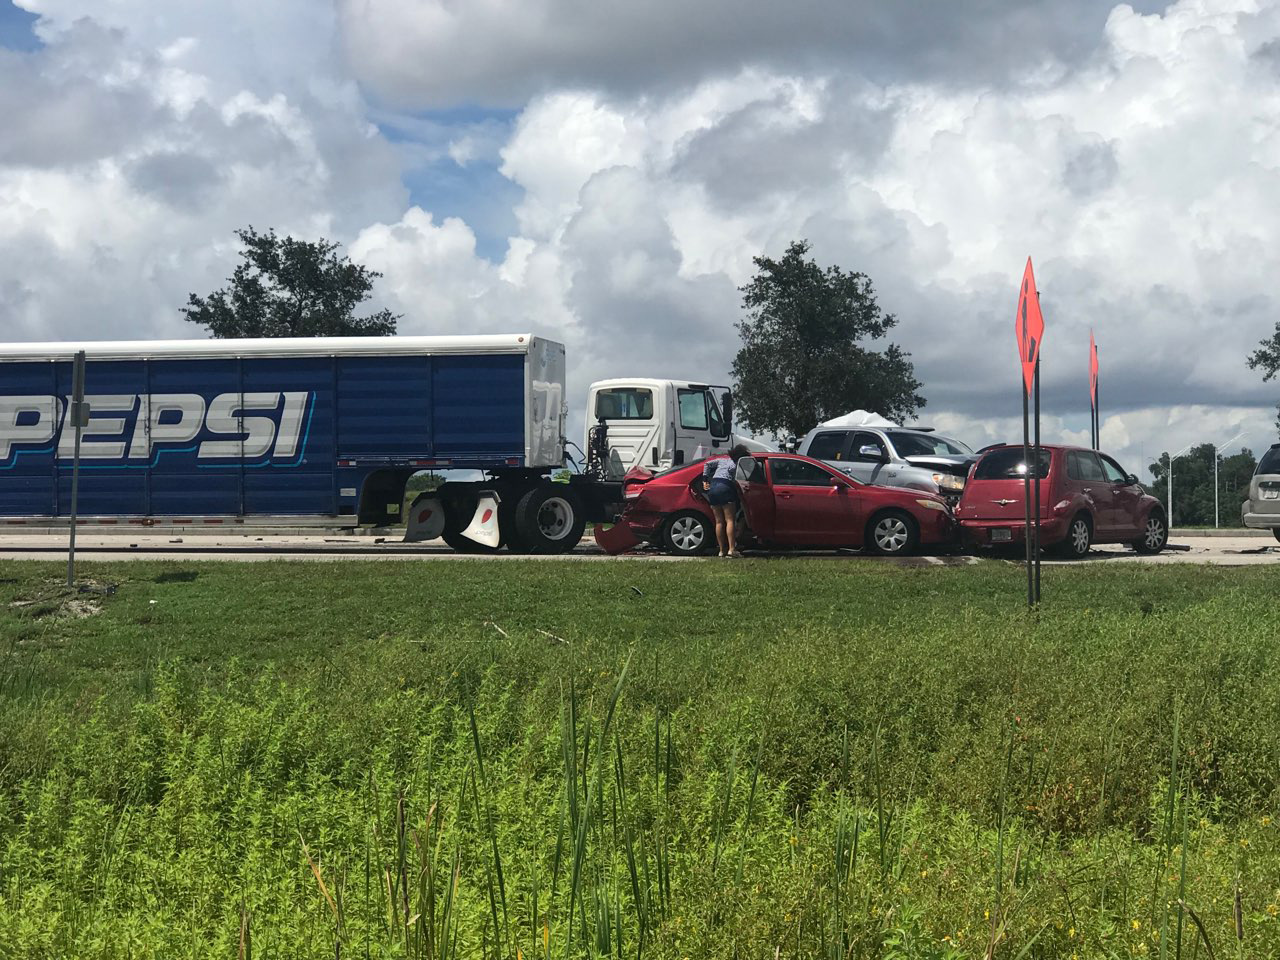 Large Pepsi Delivery Truck And Vehicles Involved In A 8 car crash on Fruitville Road In Sarasota Monday Afternoon